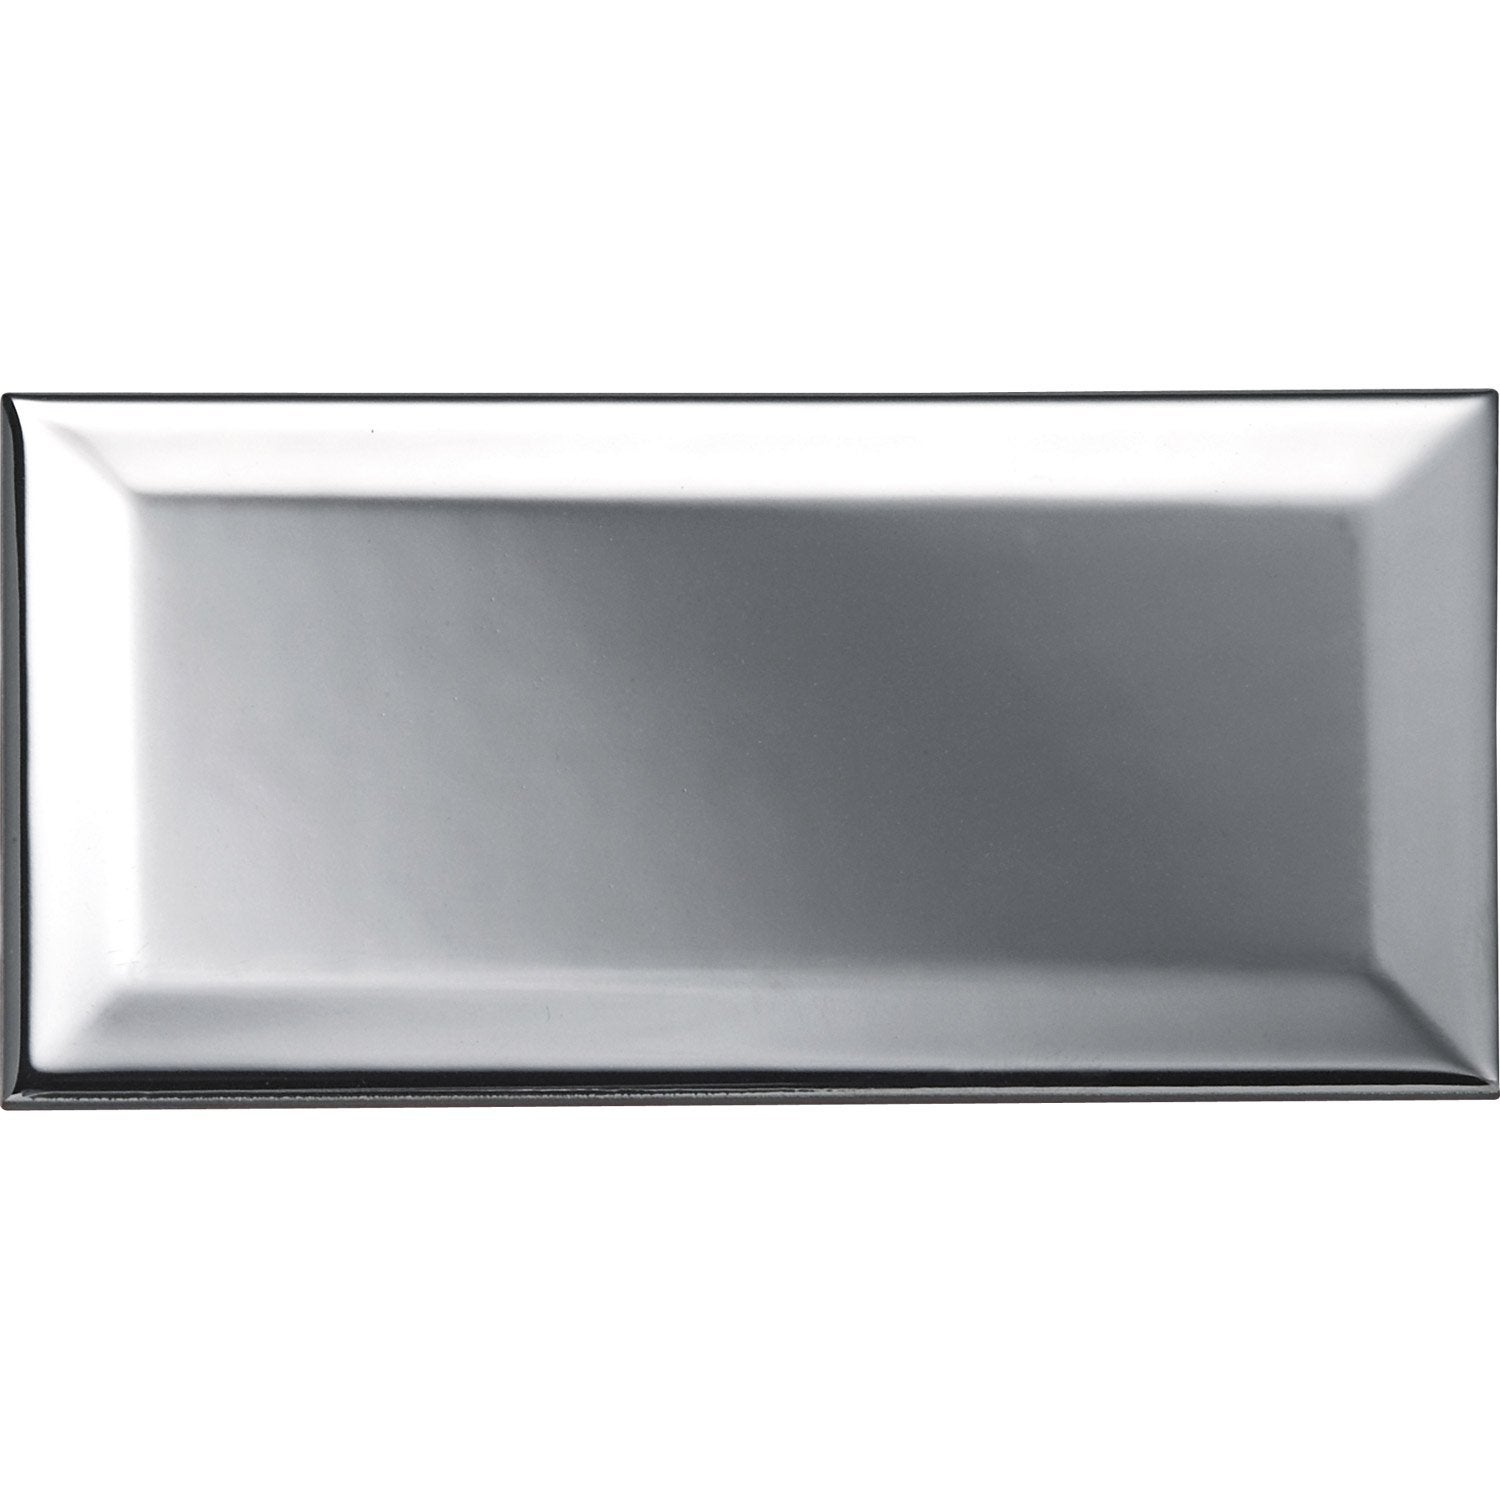 Carreau m tro argent l 7 5 x cm leroy merlin for Carrelage ardoise leroy merlin